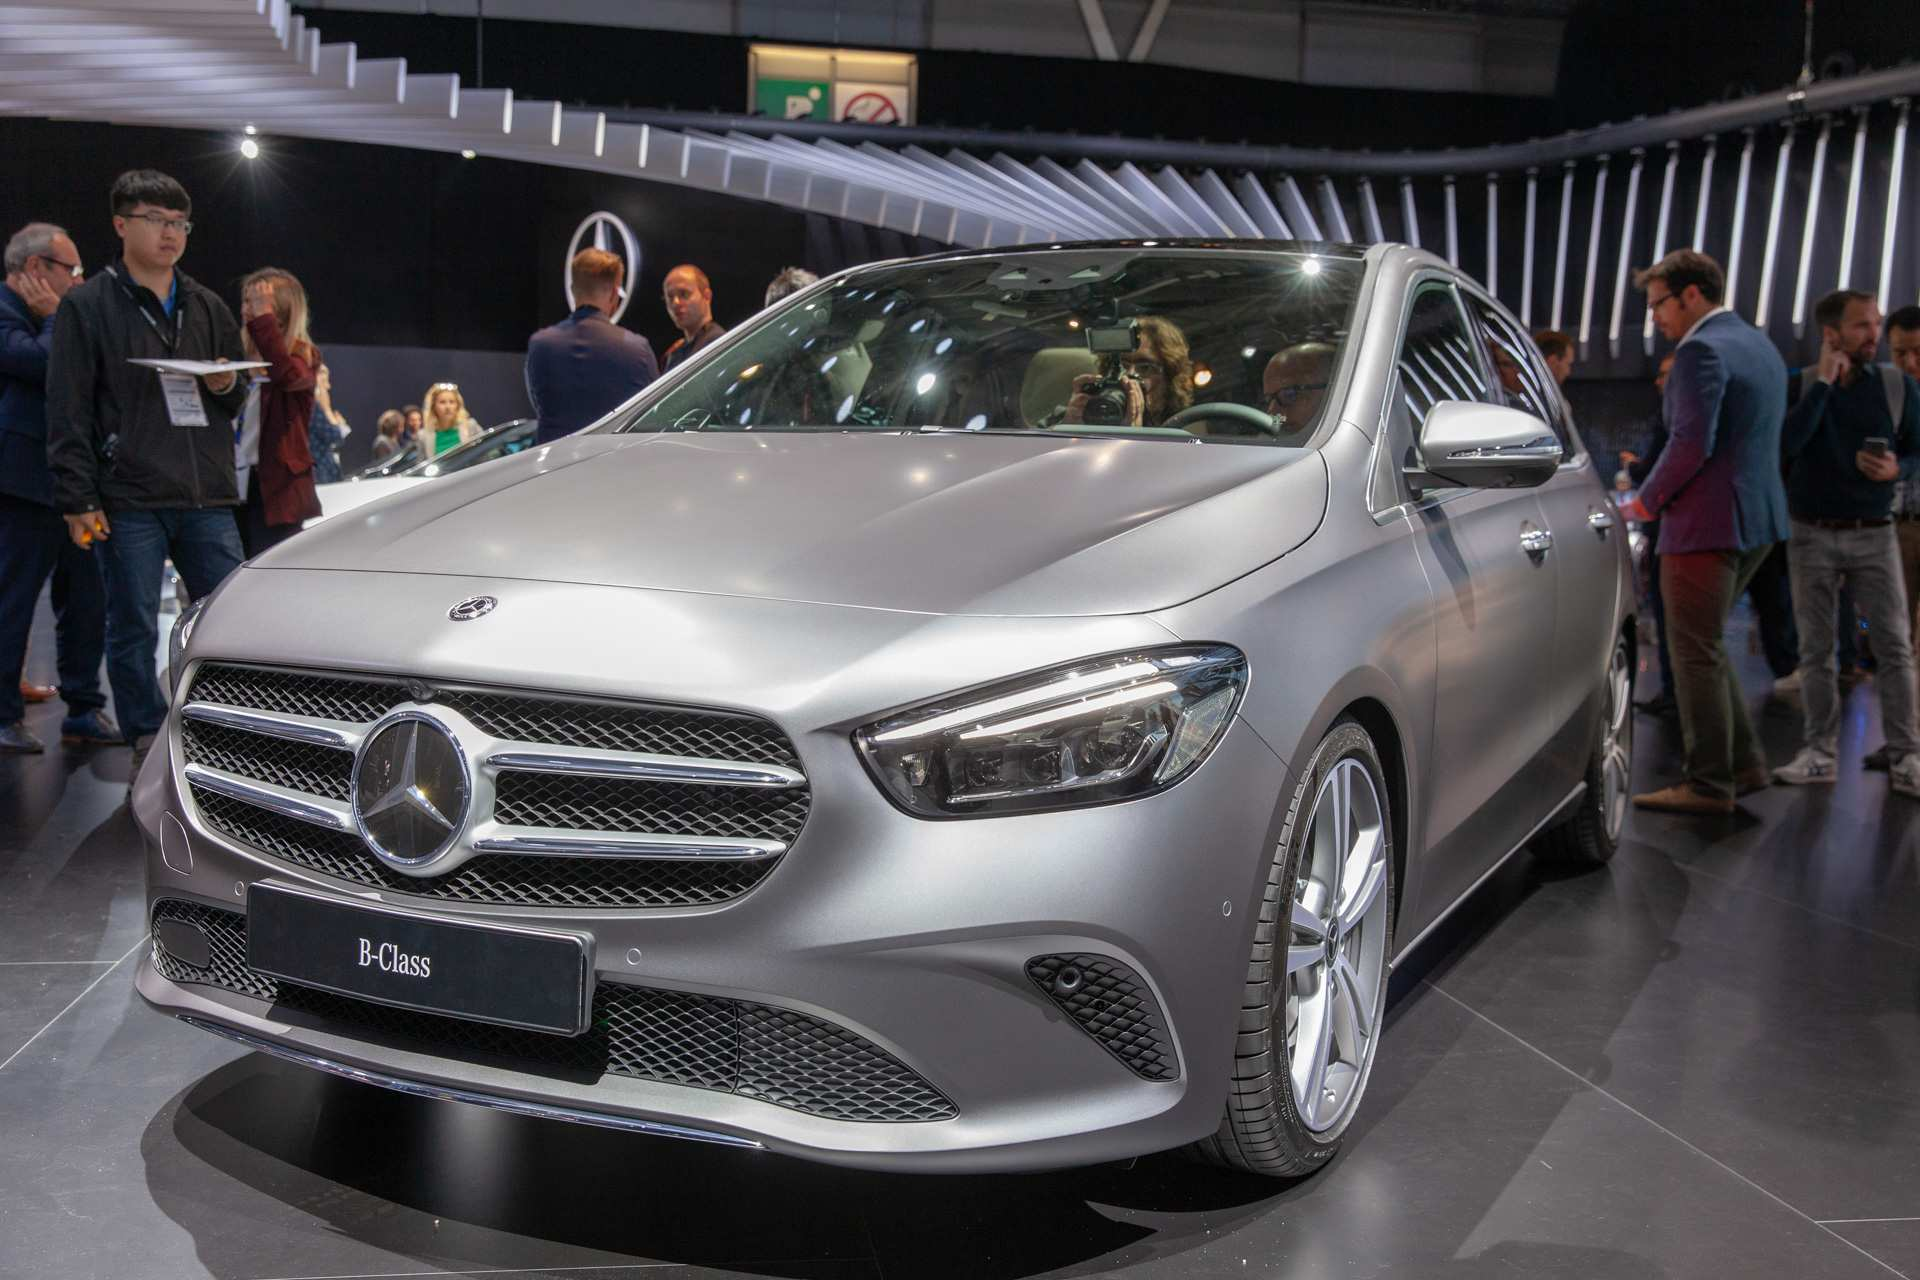 69 Concept of Mercedes B Class 2020 Prices by Mercedes B Class 2020